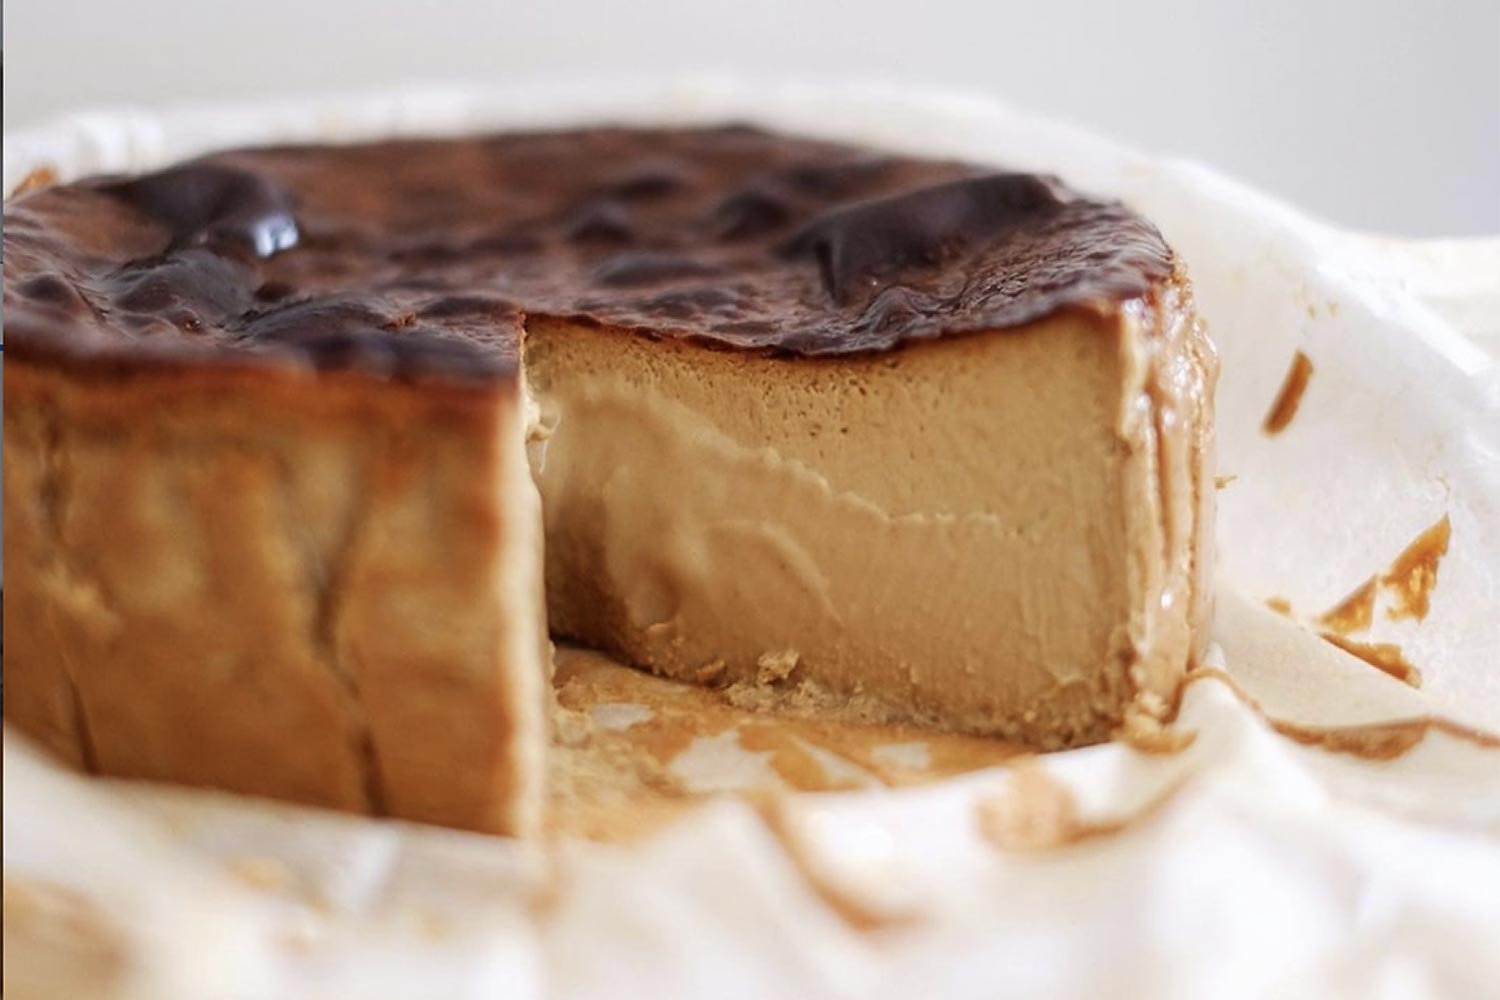 The perfect almost-burnt cheesecake